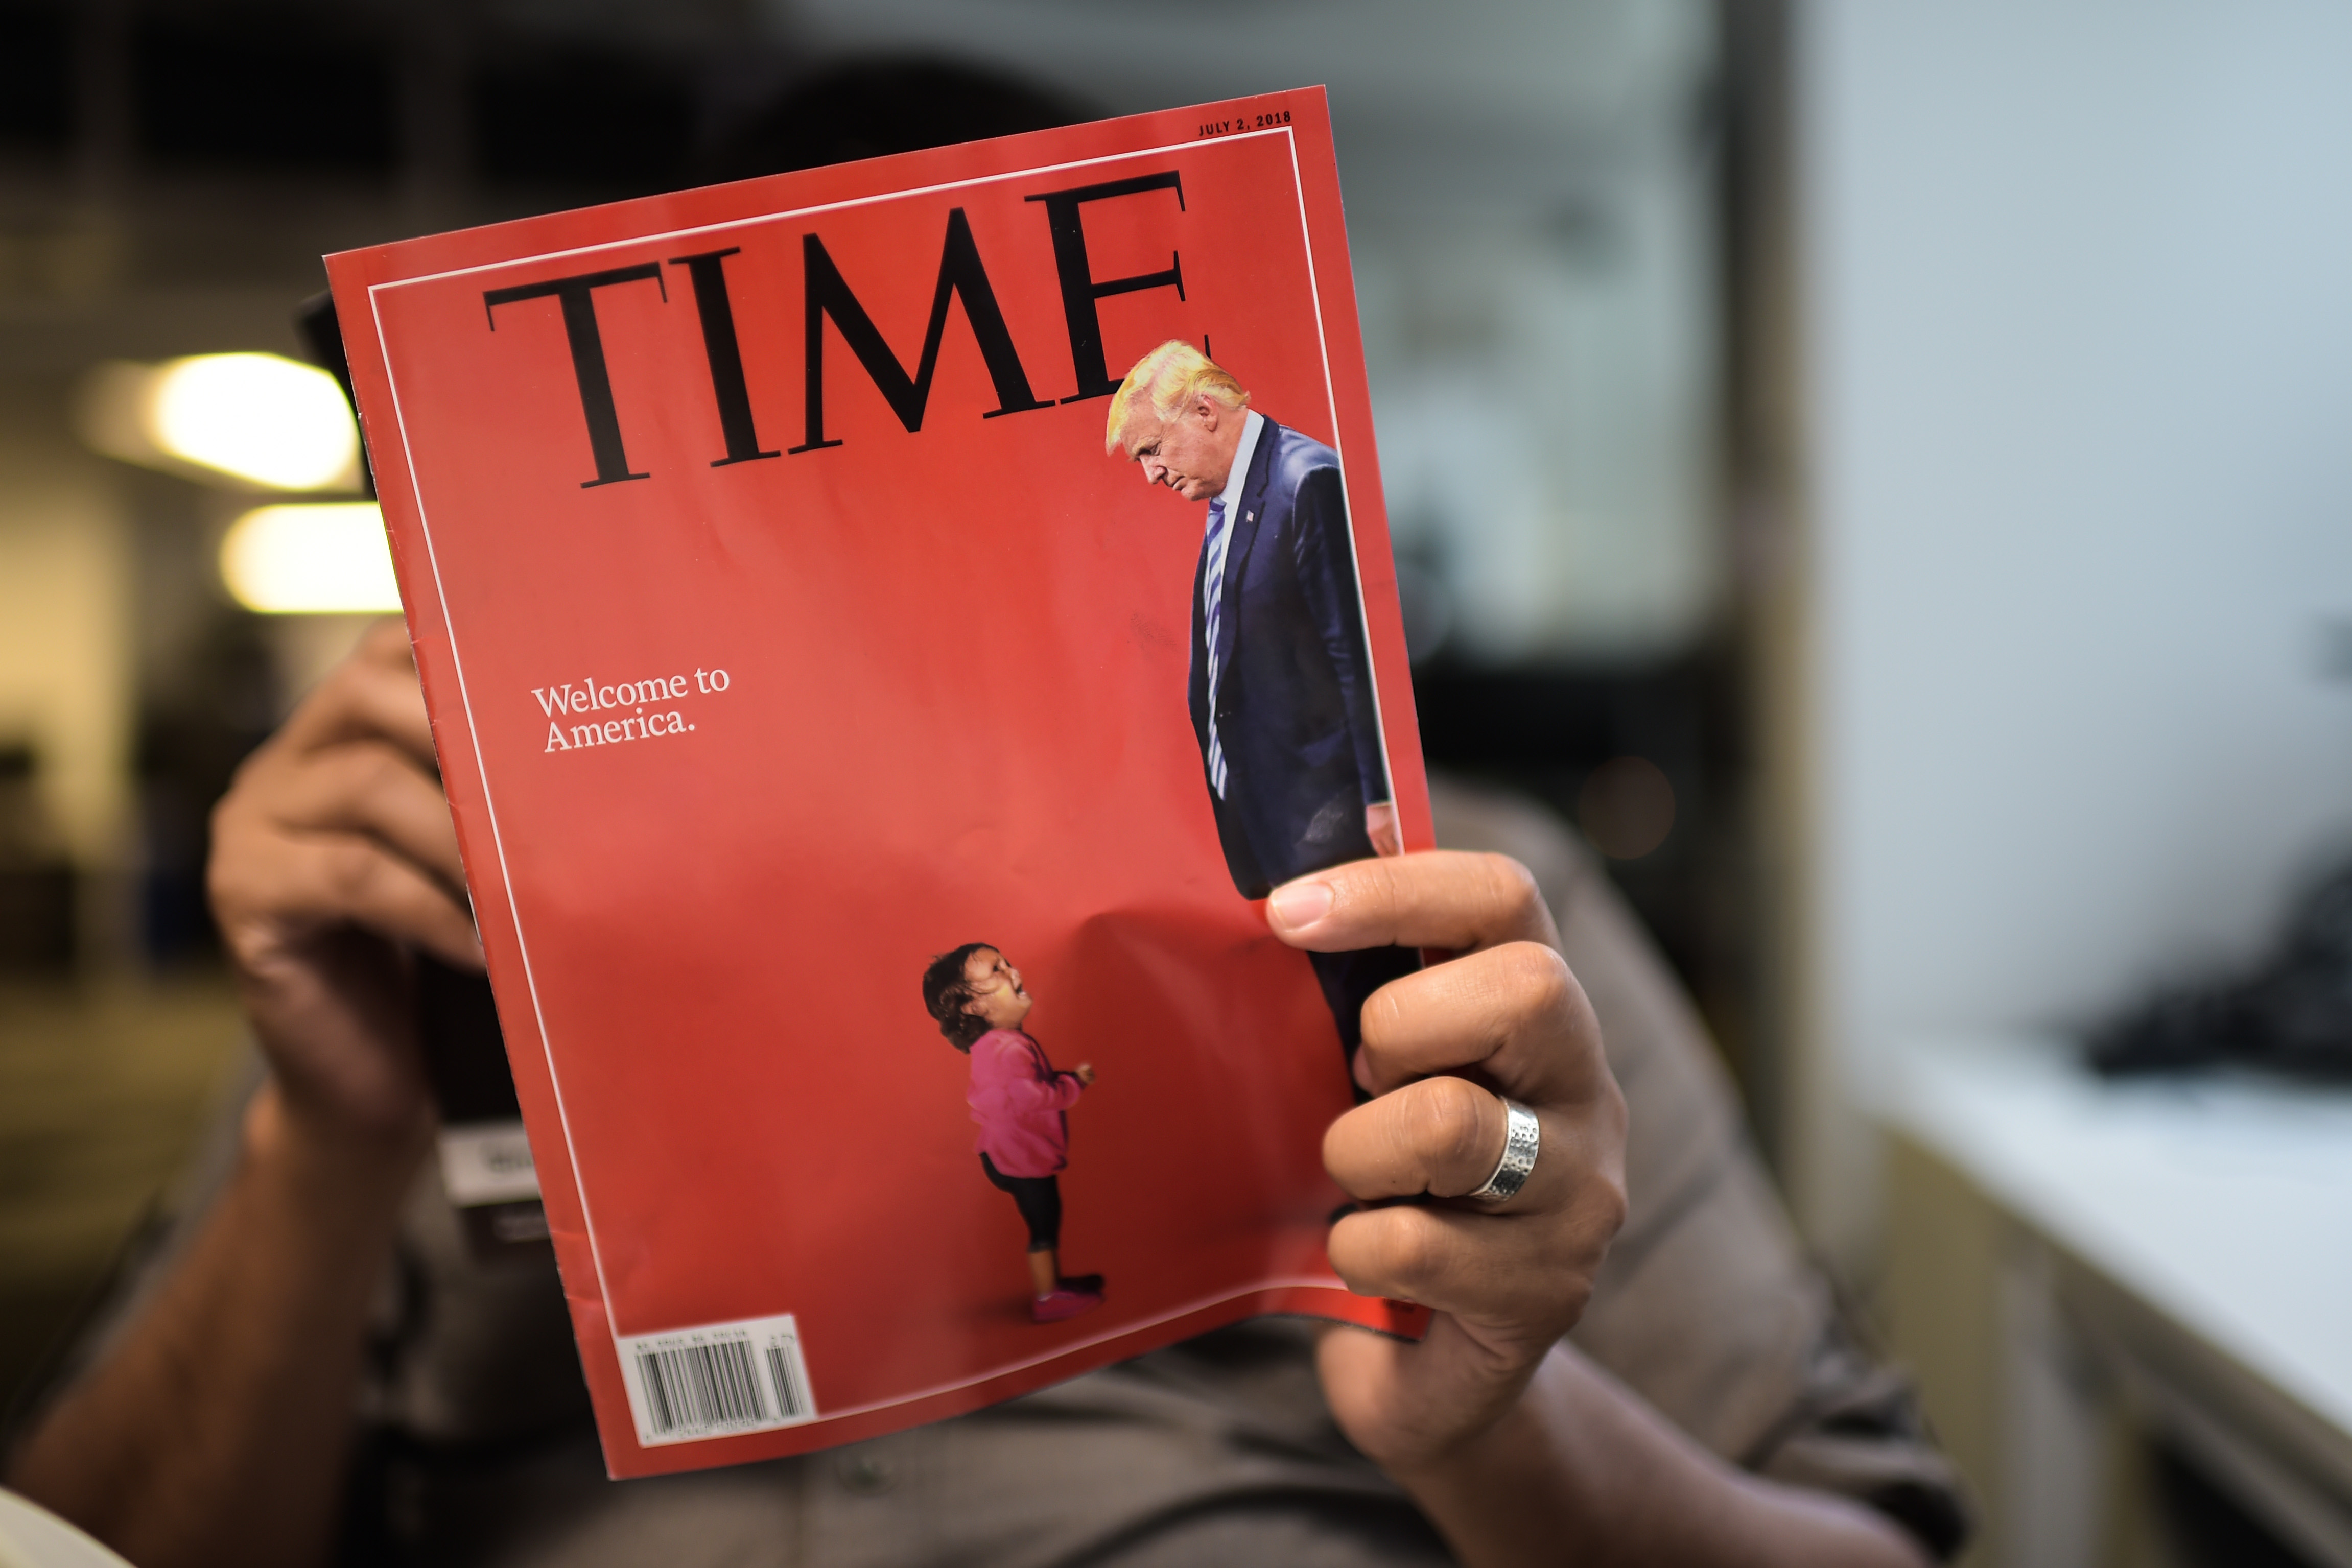 An AFP journalists reads a copy of Time Magazine with a front cover using a combination of pictures showing a crying child taken at the US Border Mexico and a picture of US President Donald Trump looking down, on June 22, 2018 in Washington DC. (Photo credit should read ERIC BARADAT/AFP/Getty Images)